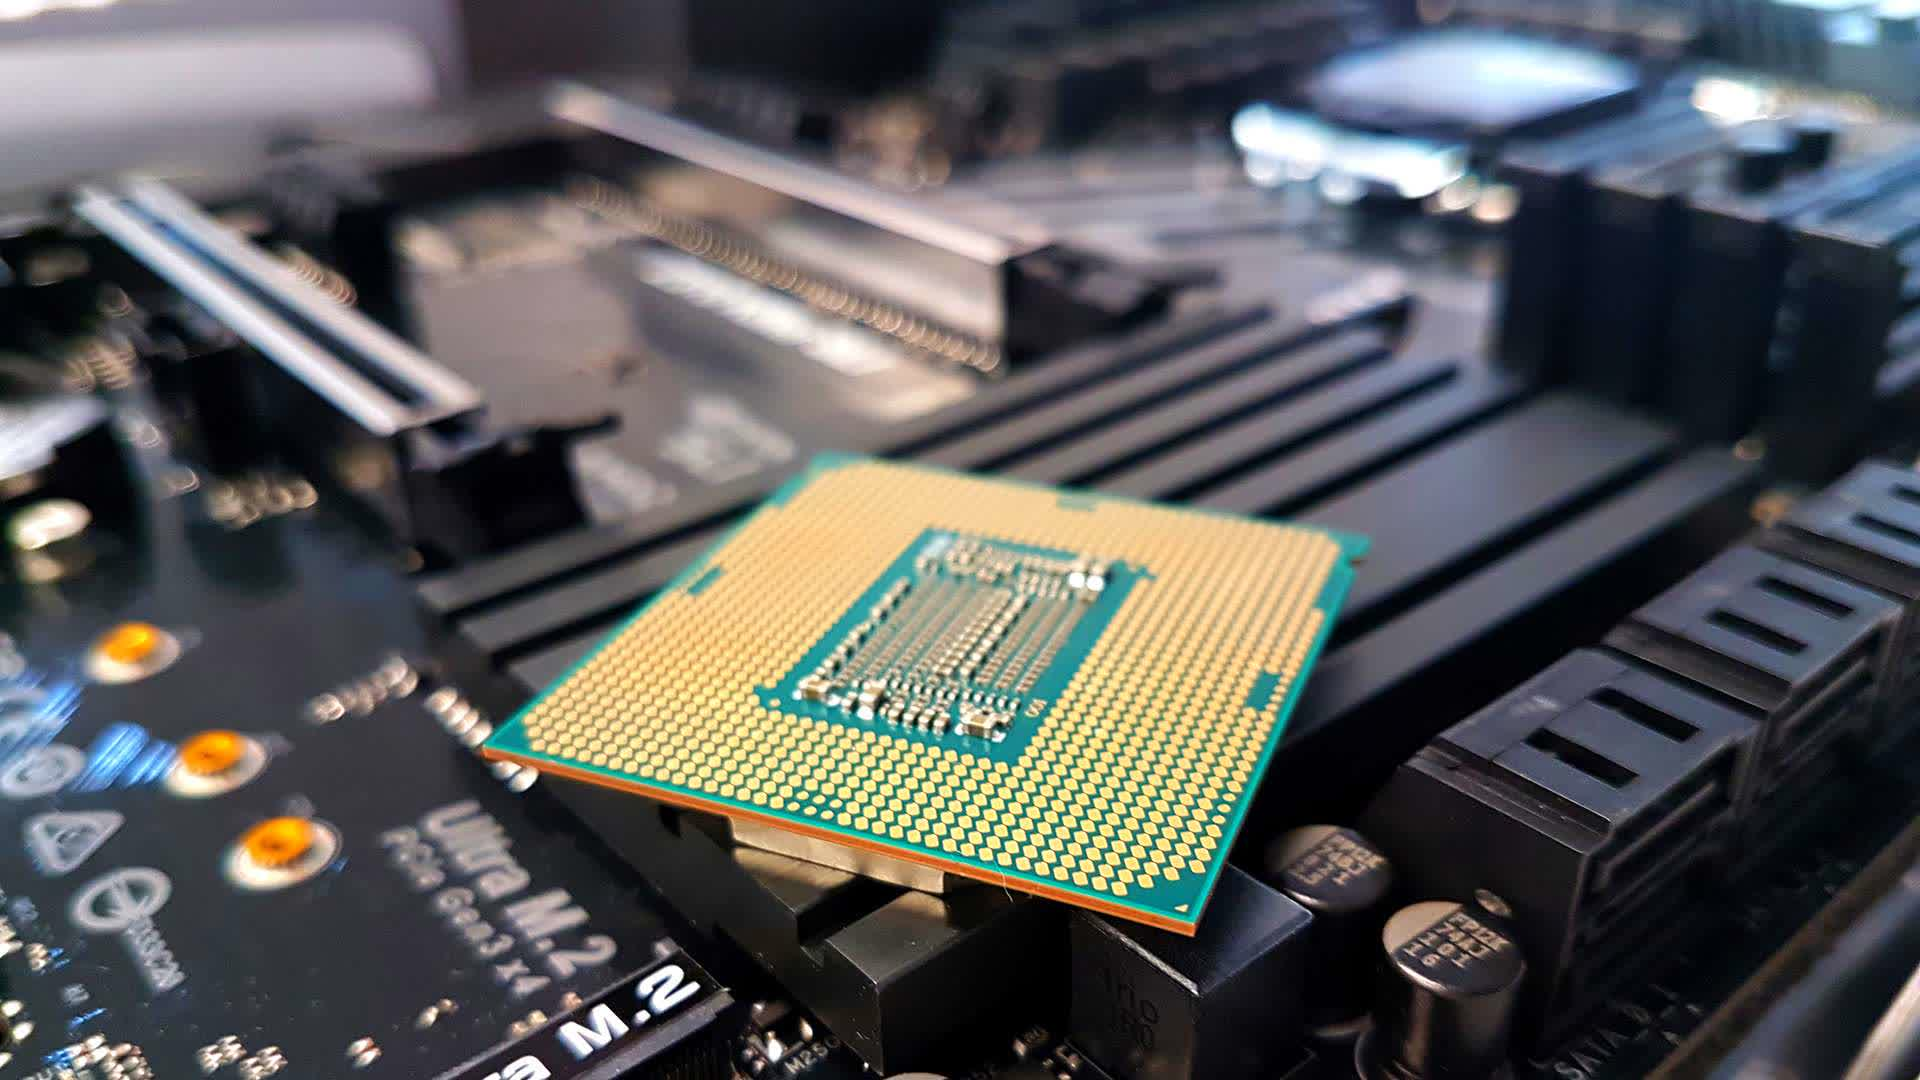 Intel Alder Lake-S CPU alleged pricing revealed by US retailer ahead of official launch